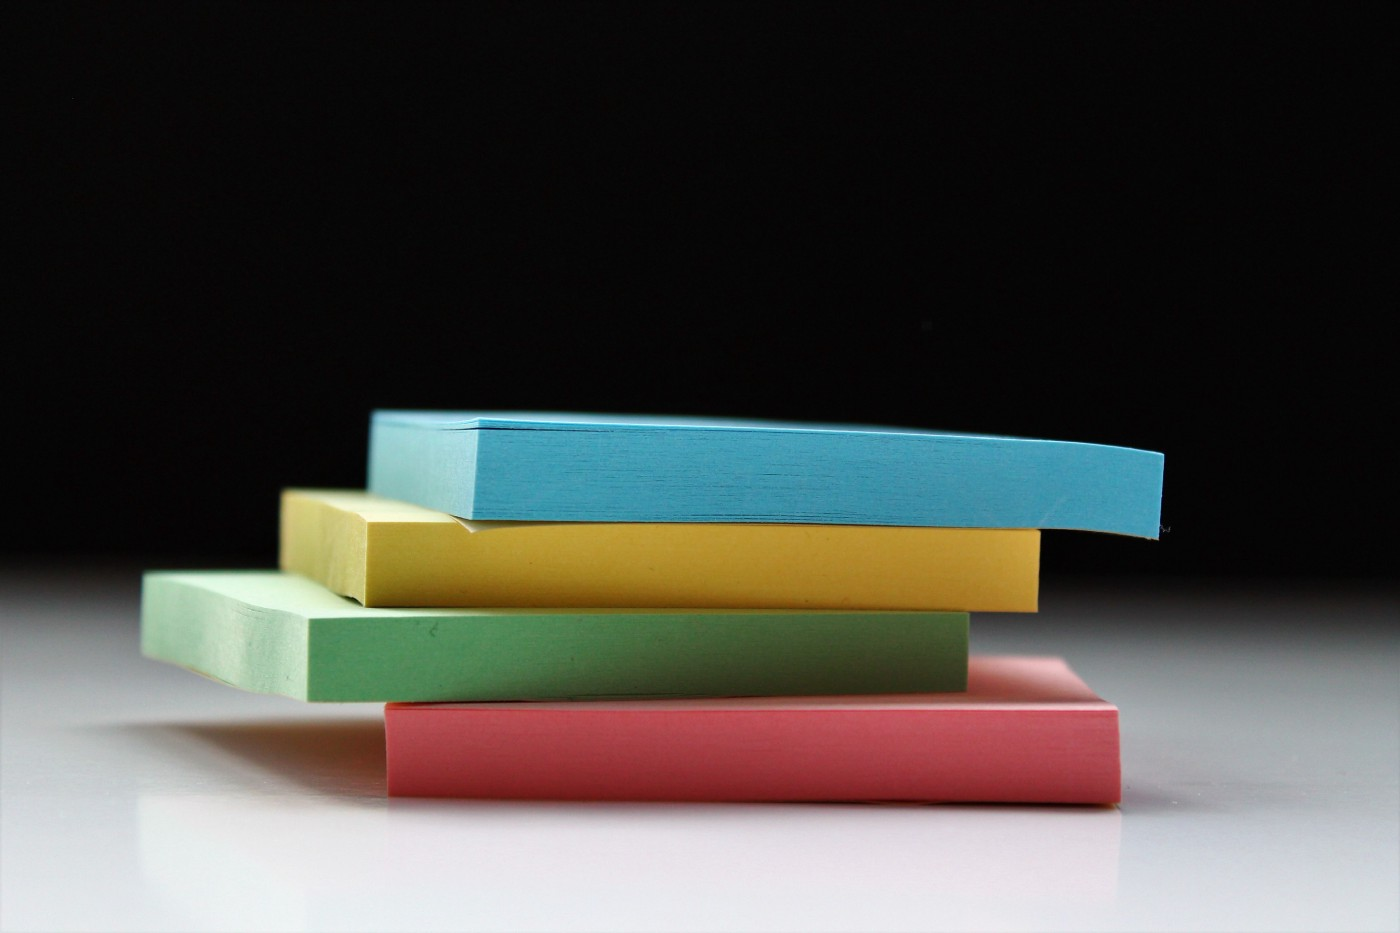 A stack of three pads of Post-it notes on a dark background.